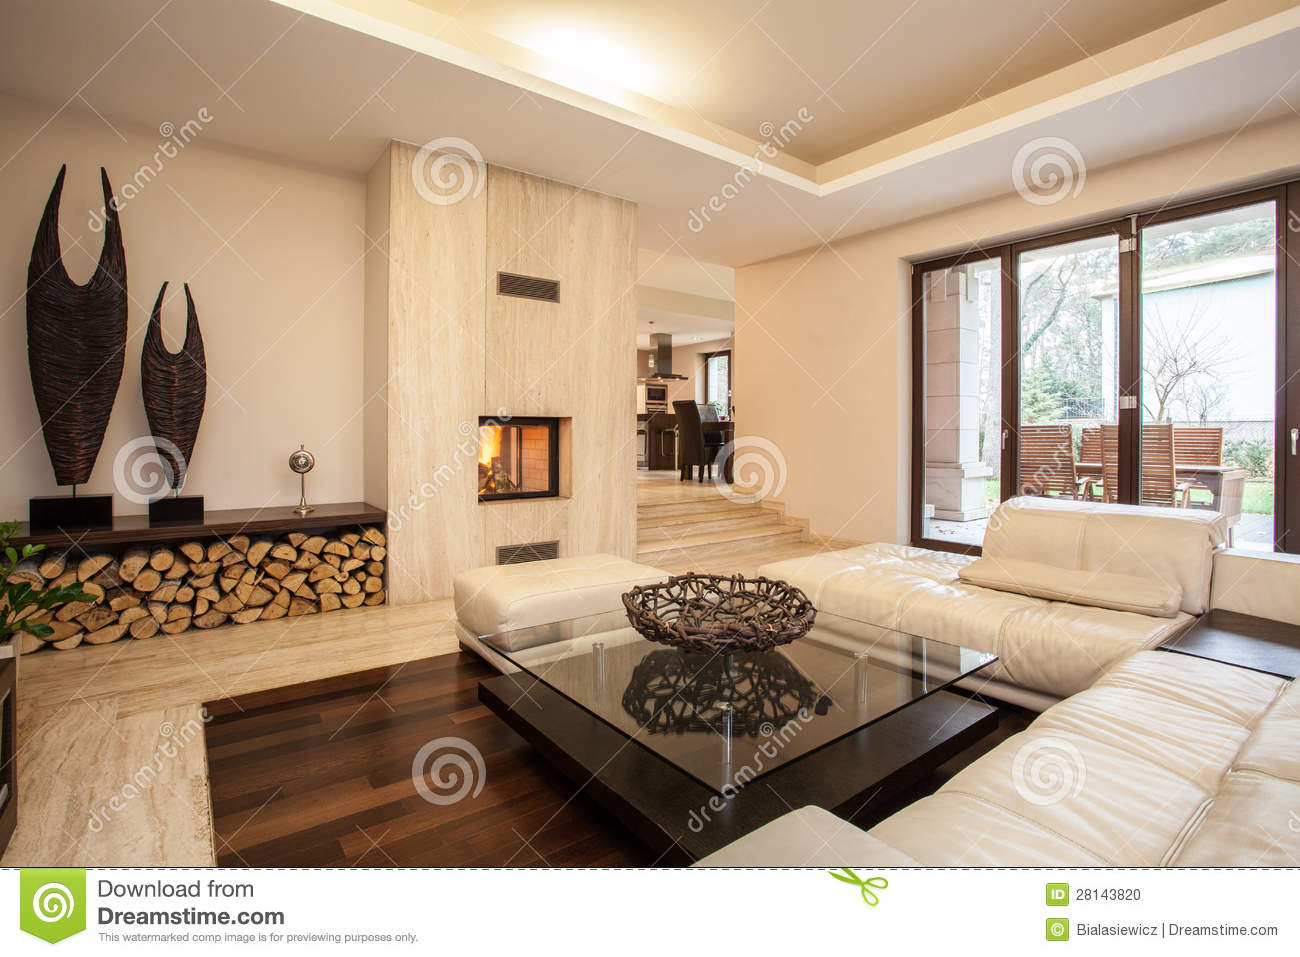 Living room 2017 wood design with wheat linen seat upholstery weinda - Maison De Travertin Salon Beige Photo Stock Image 28143820